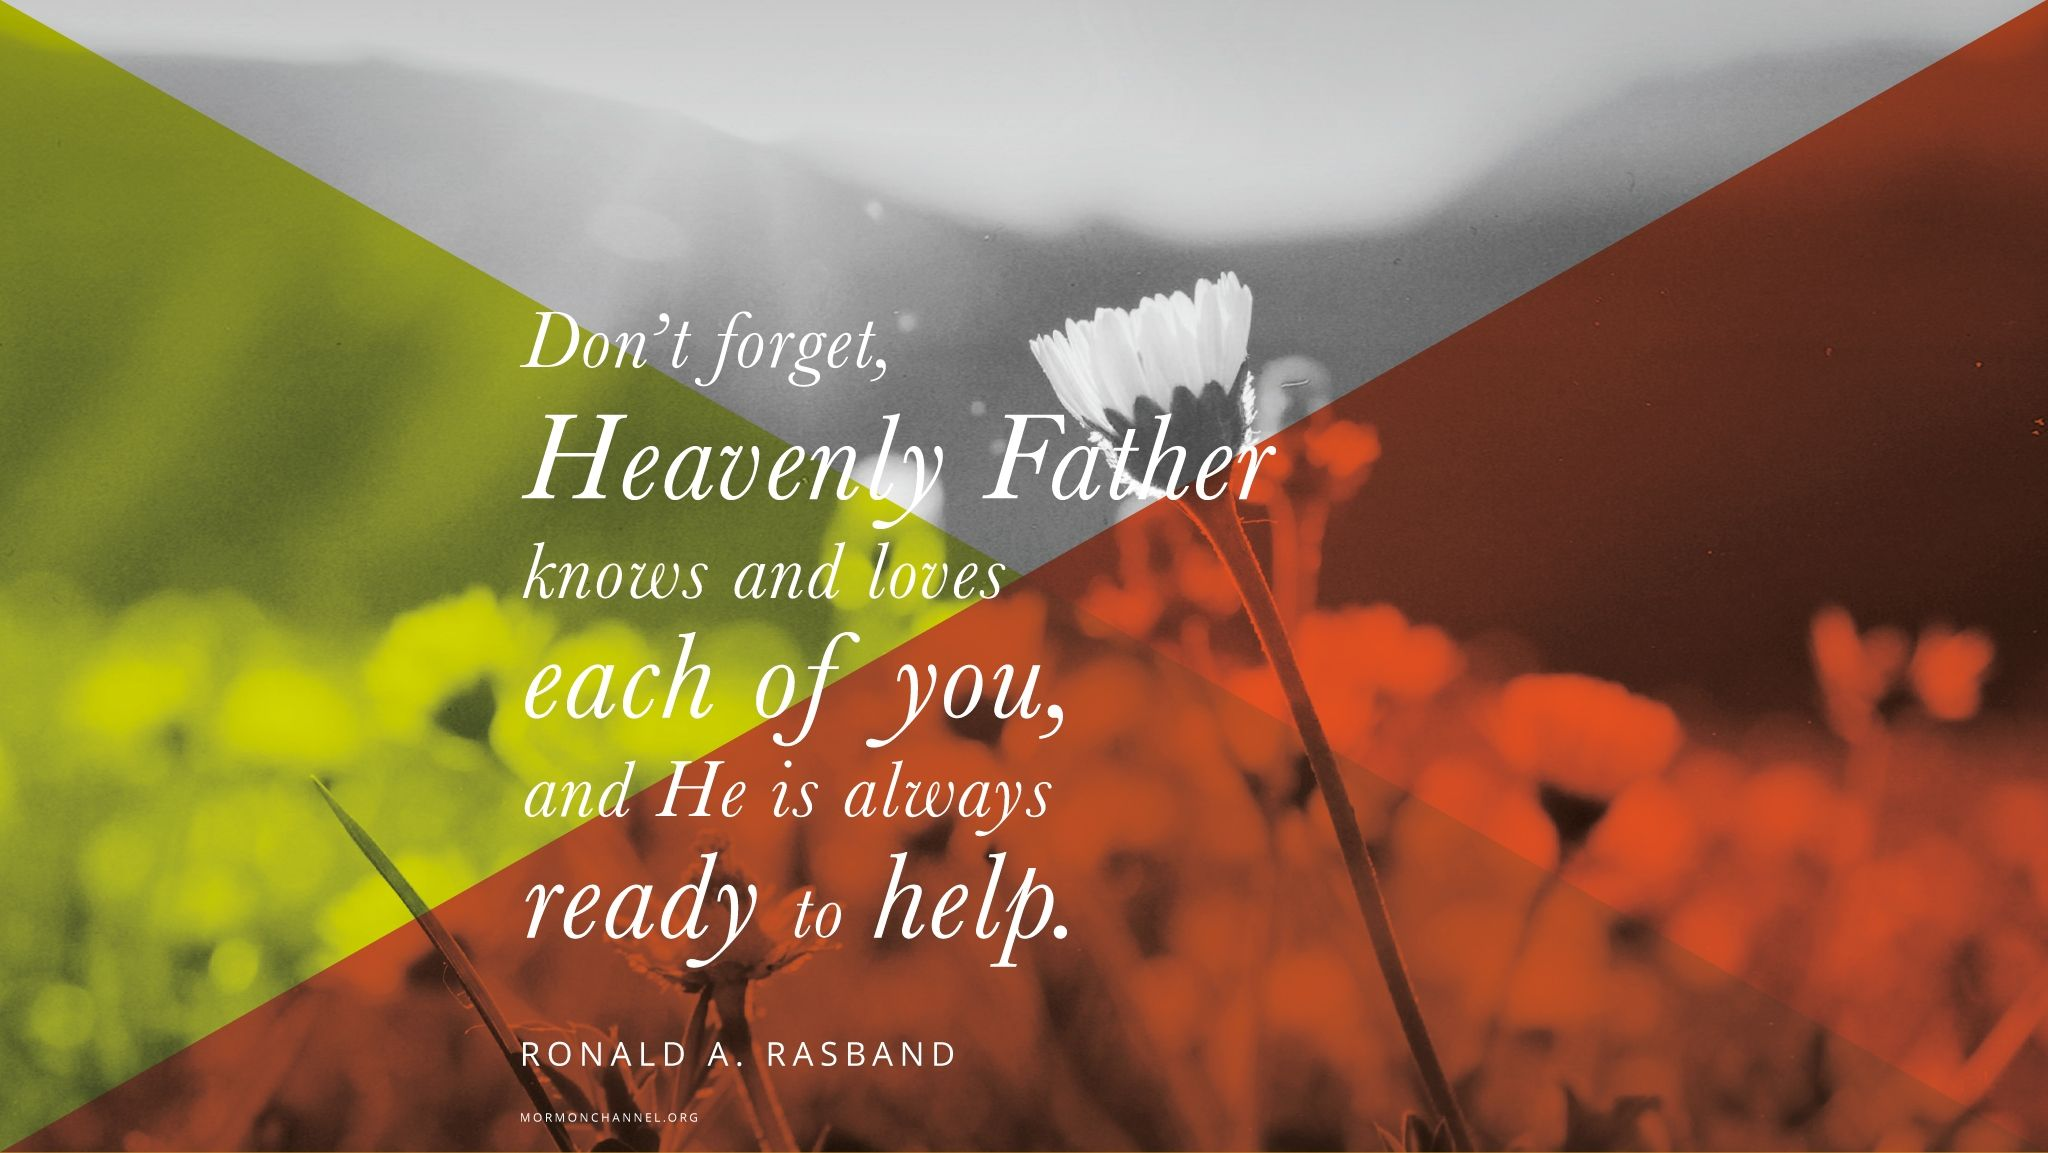 """""""[Don't] forget, Heavenly Father knows and loves each of you, and He is always ready to help.""""—Elder Ronald A. Rasband, """"Lest Thou Forget"""" © undefined ipCode 1."""